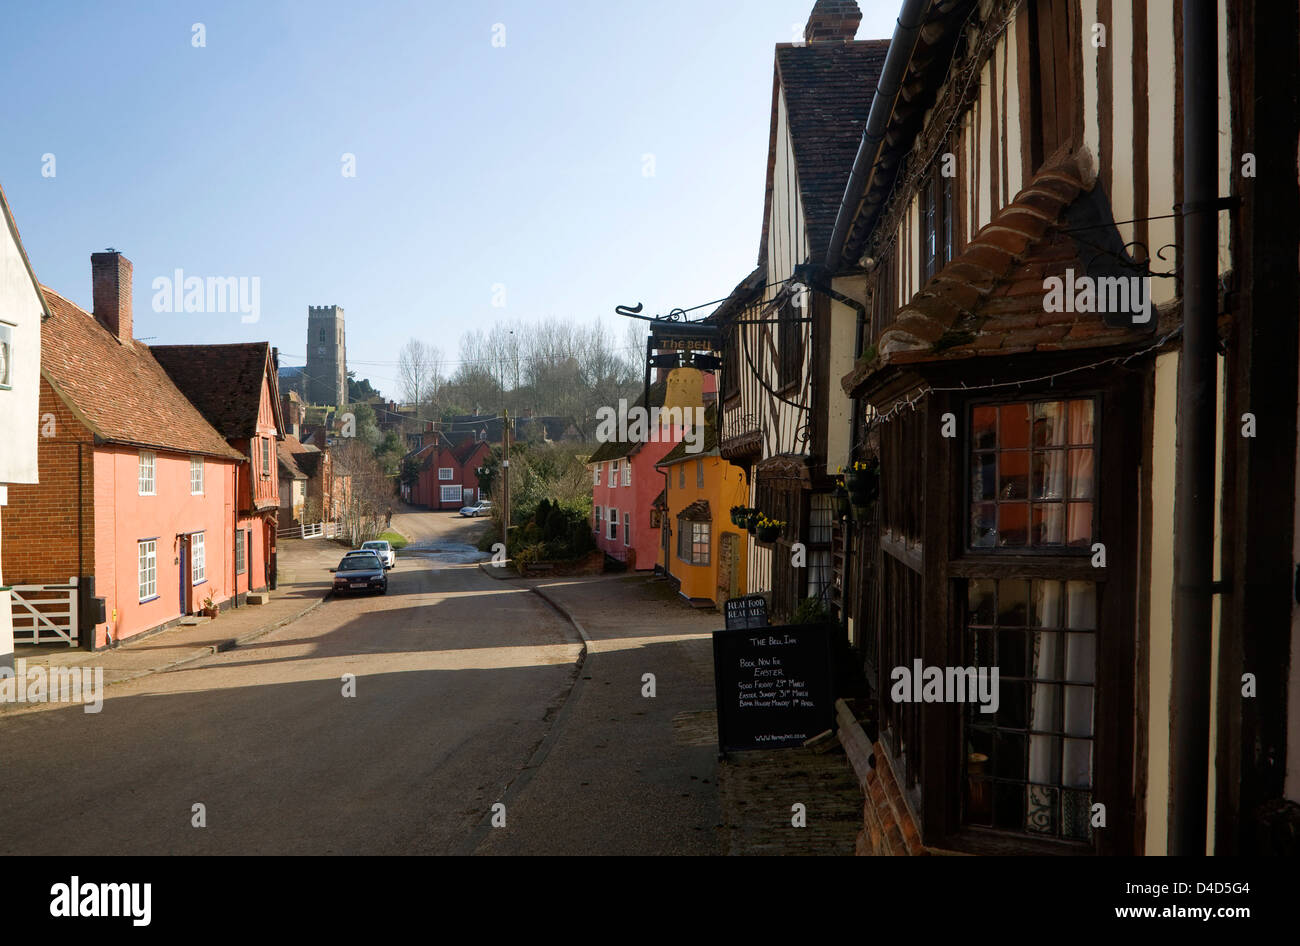 Historic buildings in the village of Kersey, Suffolk, England - Stock Image